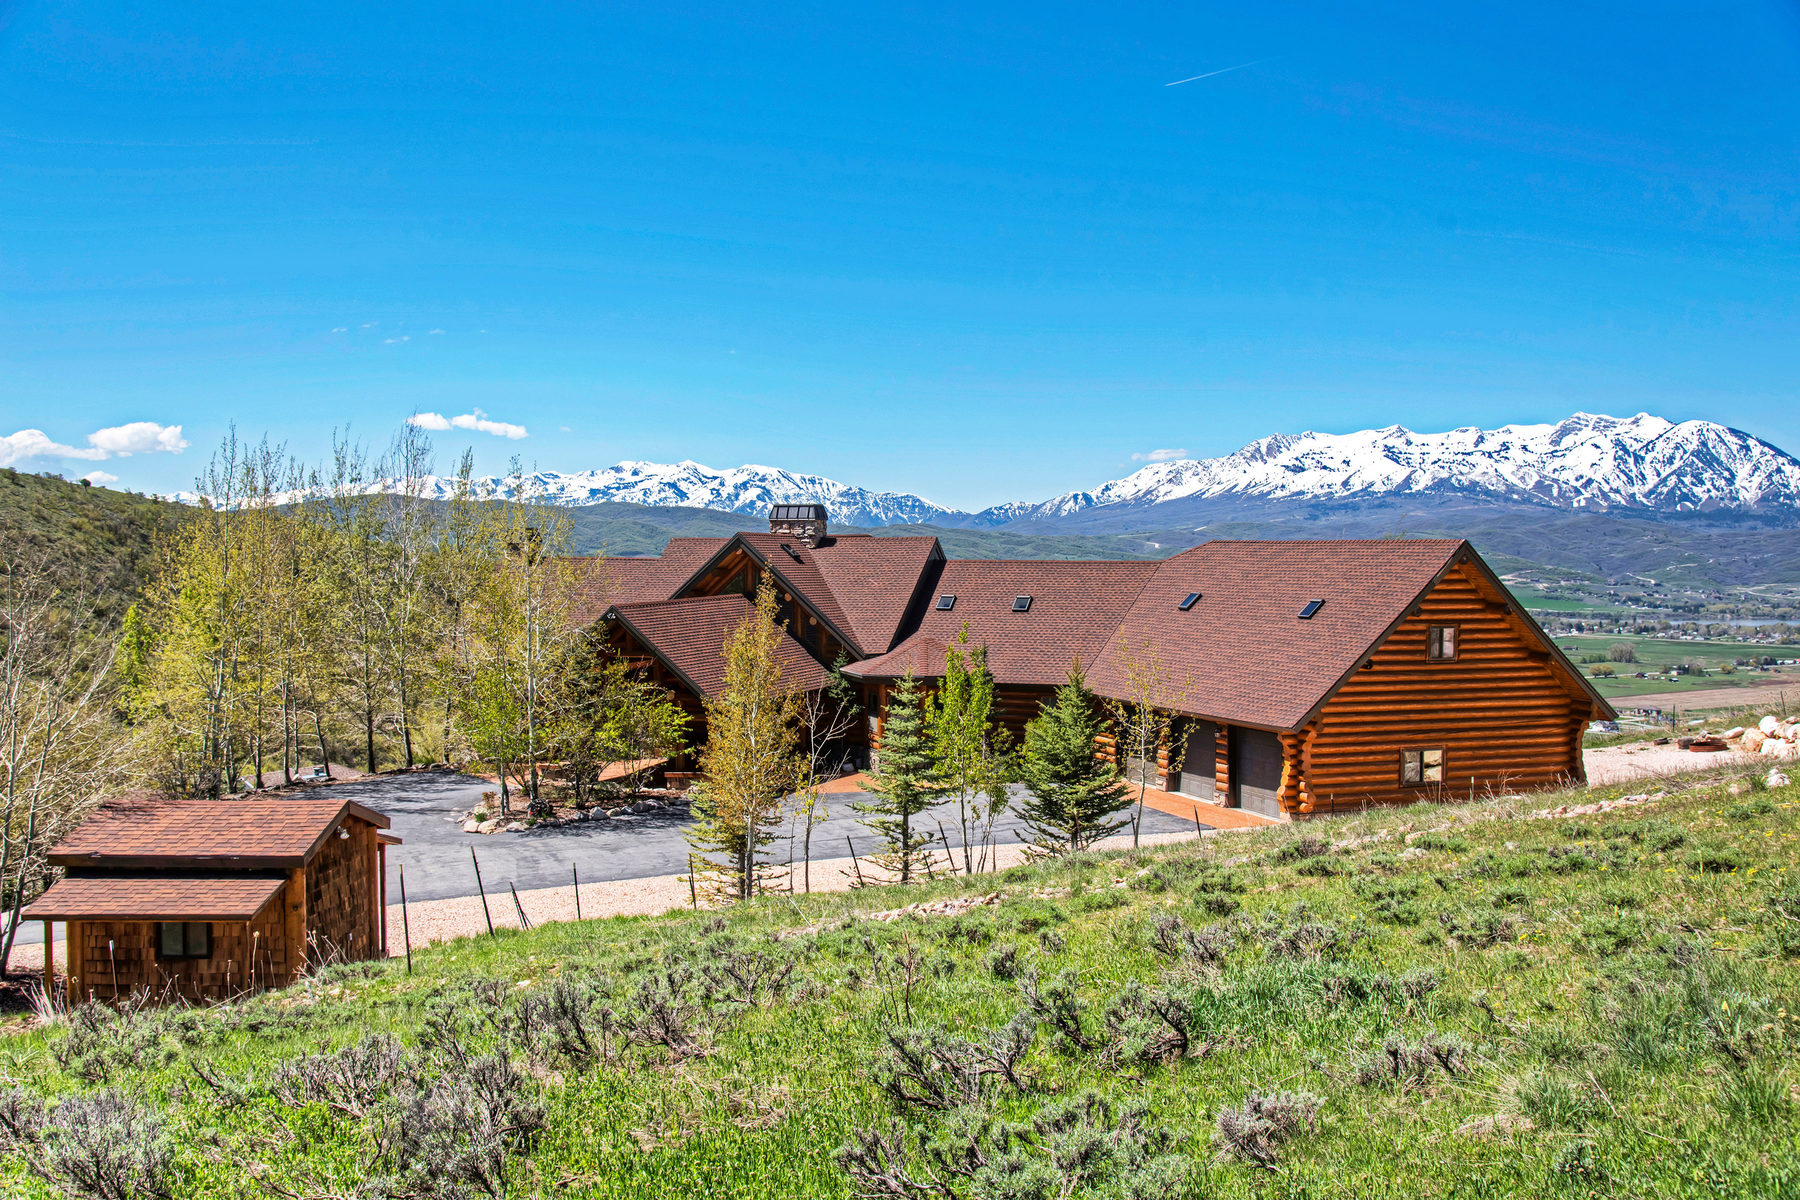 Maison unifamiliale pour l Vente à Breathtaking views from luxury Neville log home 9542 Kelley Dr Huntsville, Utah, 84317 États-Unis